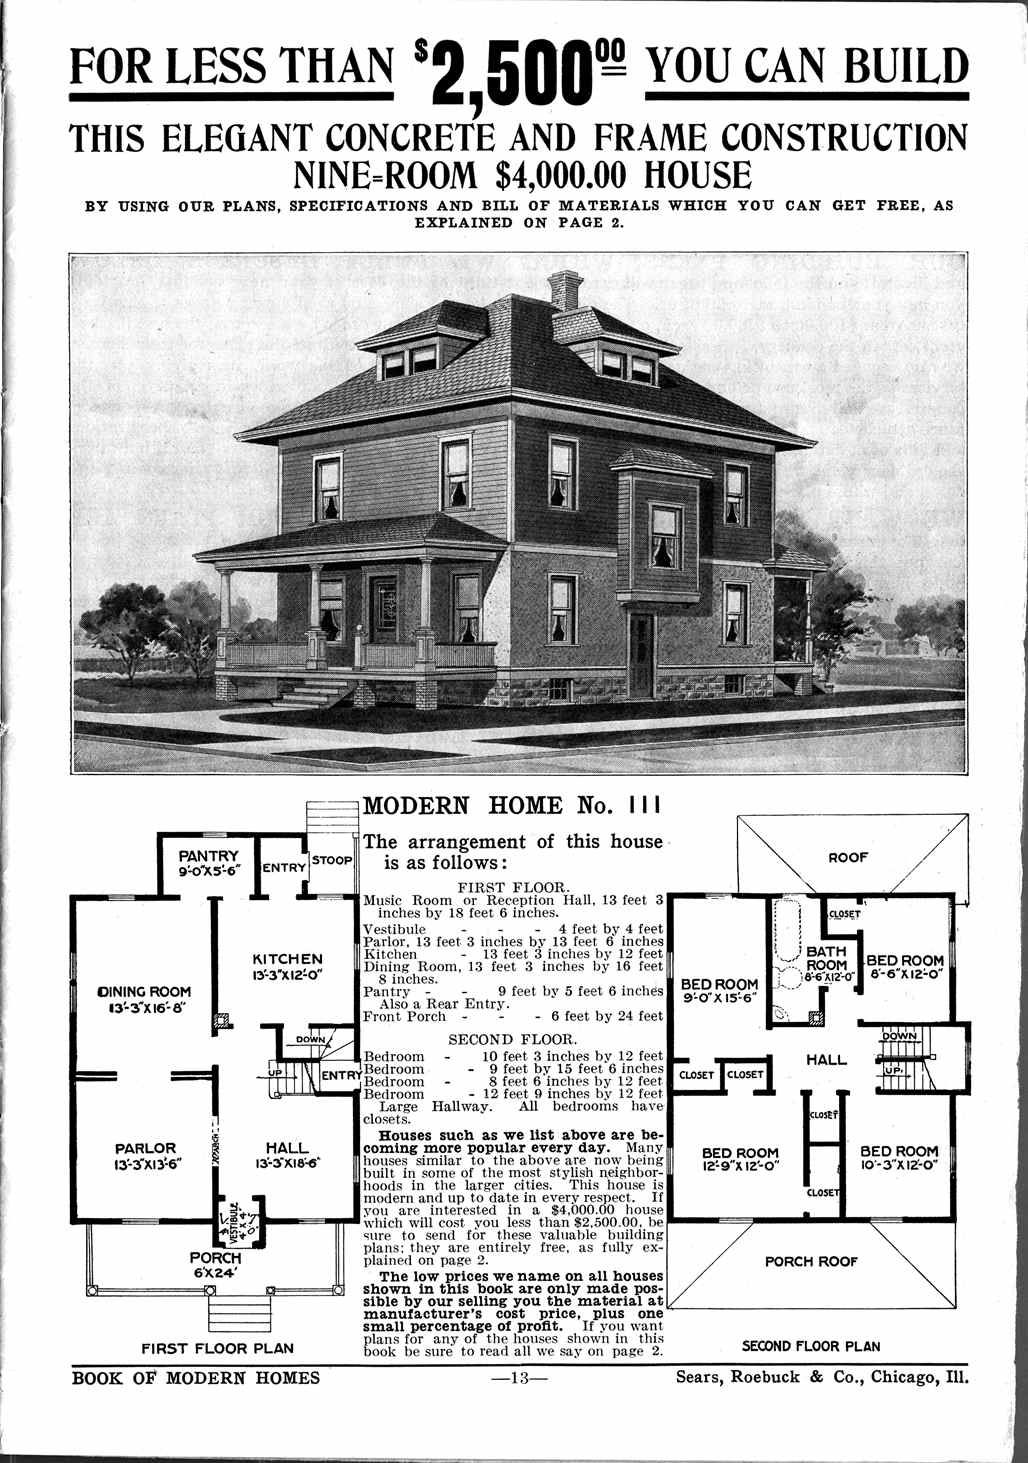 Four Squar House Design Of 1900s: Sears Homes 1908-1914